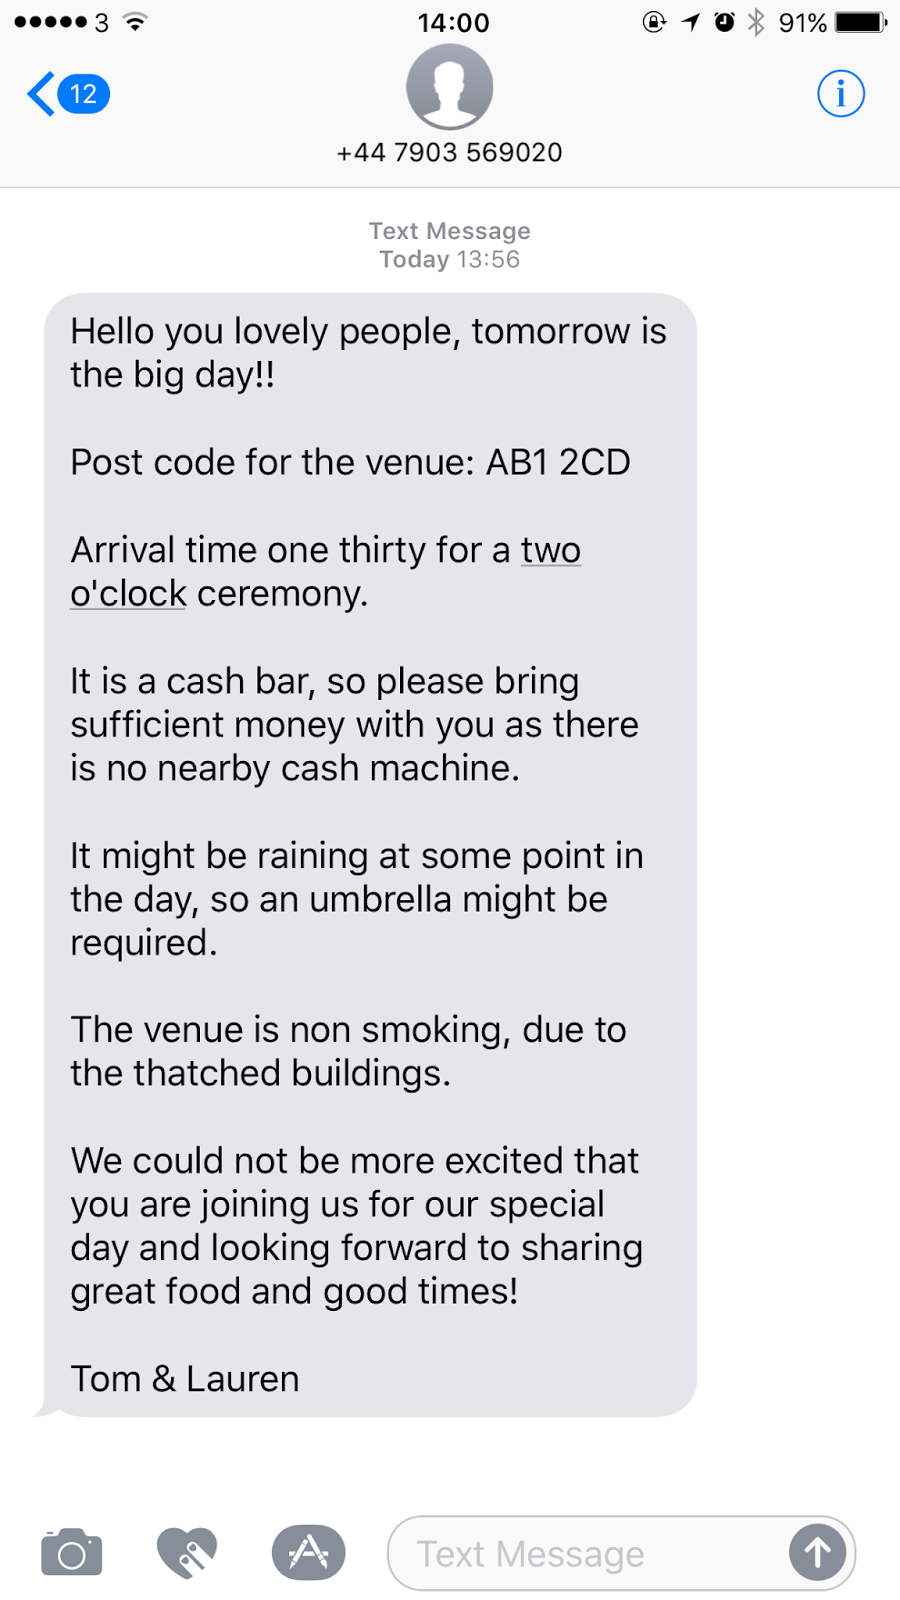 Wedding at scale how i used twilio python and google to automate the only thing left to do was send a final sms to remind guests of the basic details and to arm themselves with an umbrella to ward off the typically rainy stopboris Gallery